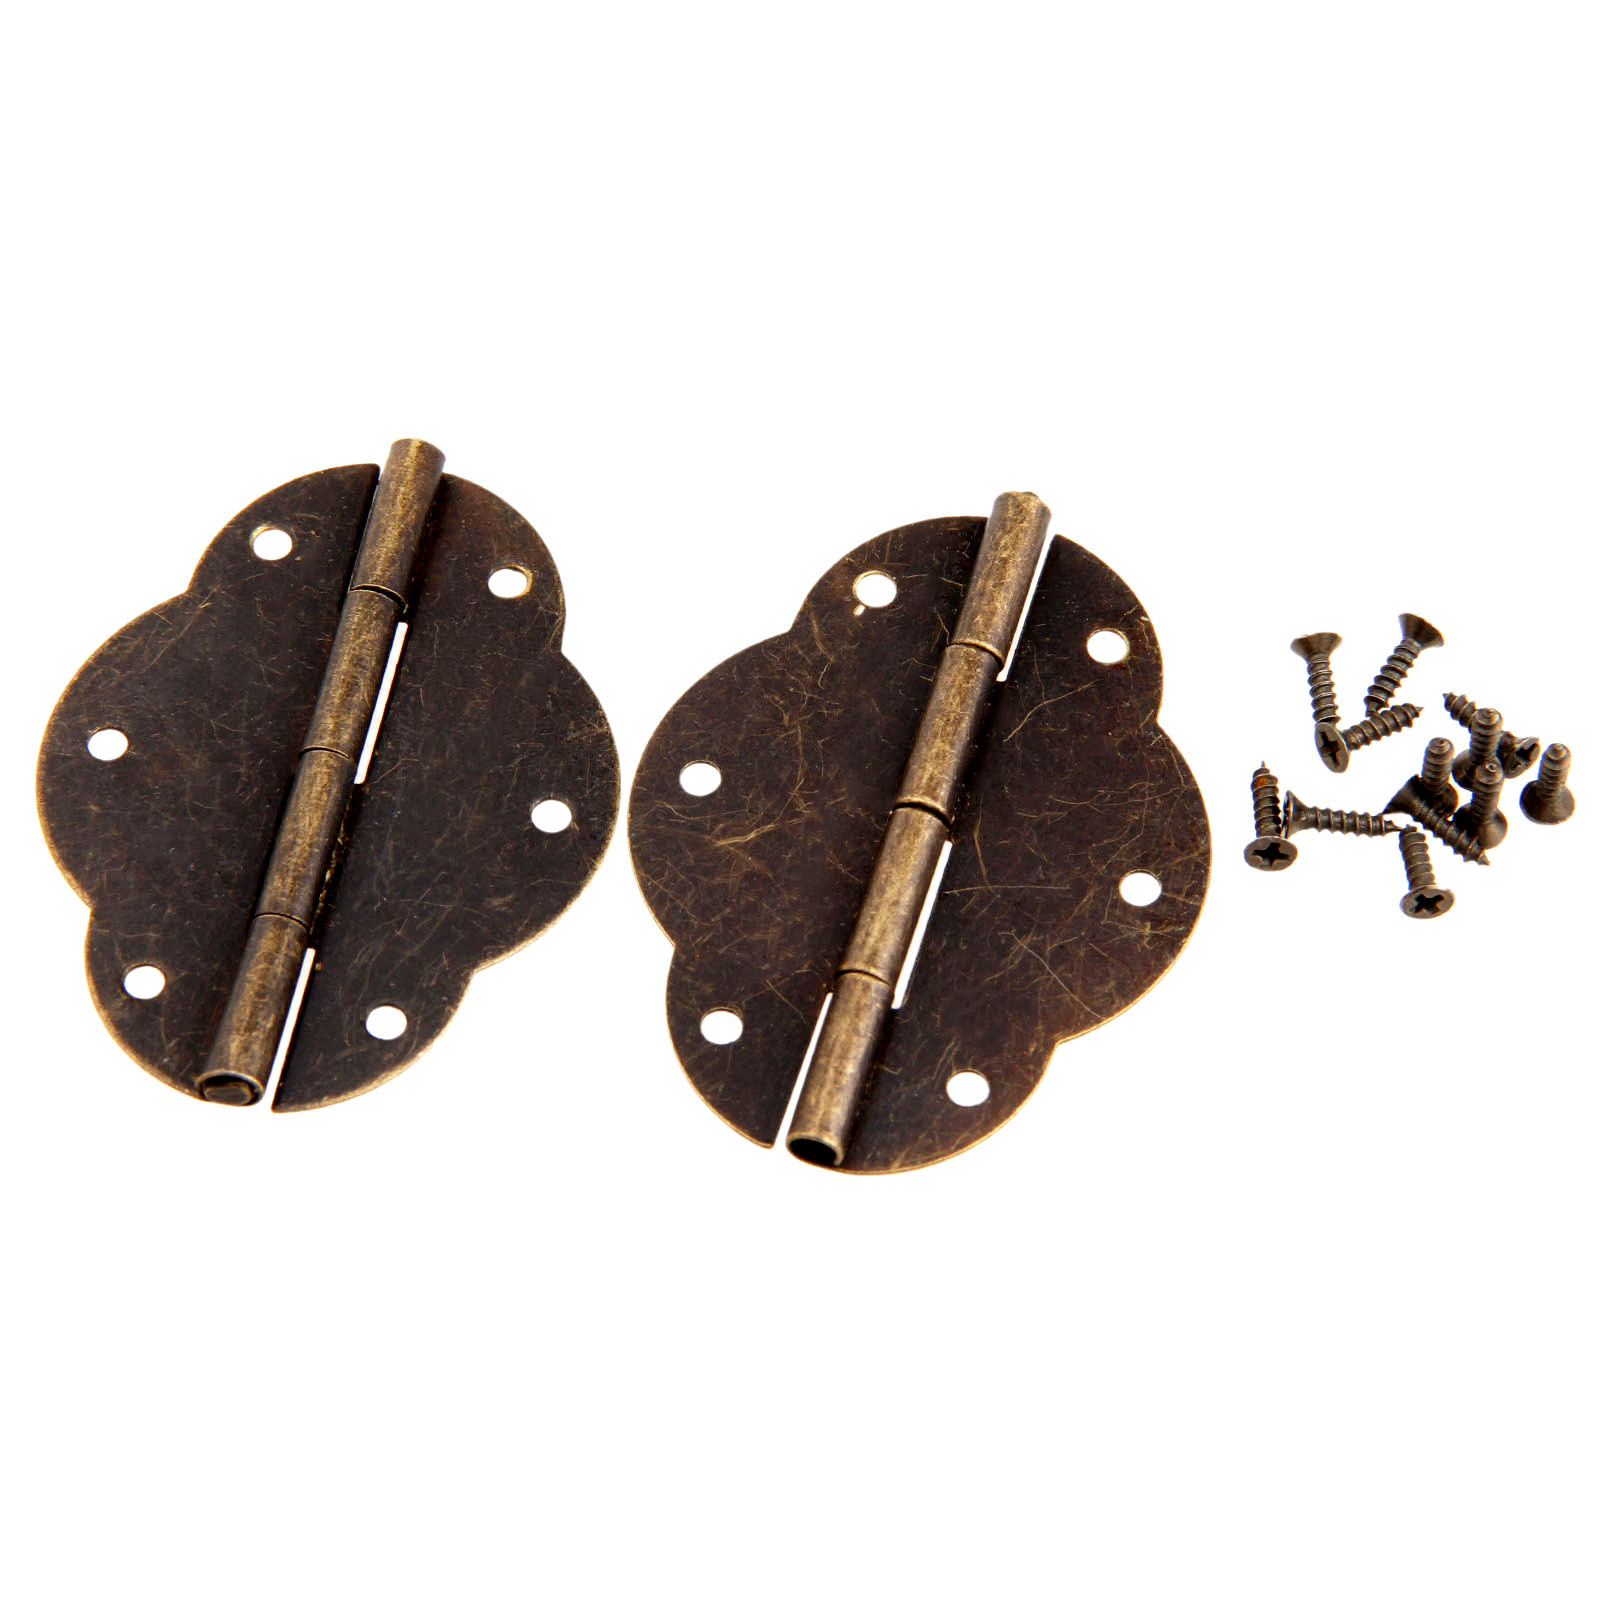 DRELD 2Pcs Antique Bronze Cabinet Hinges Door Butt Hinge Wood Gift Jewelry Box Hinge Fittings for Furniture Hardware with Screws in Cabinet Hinges from Home Improvement